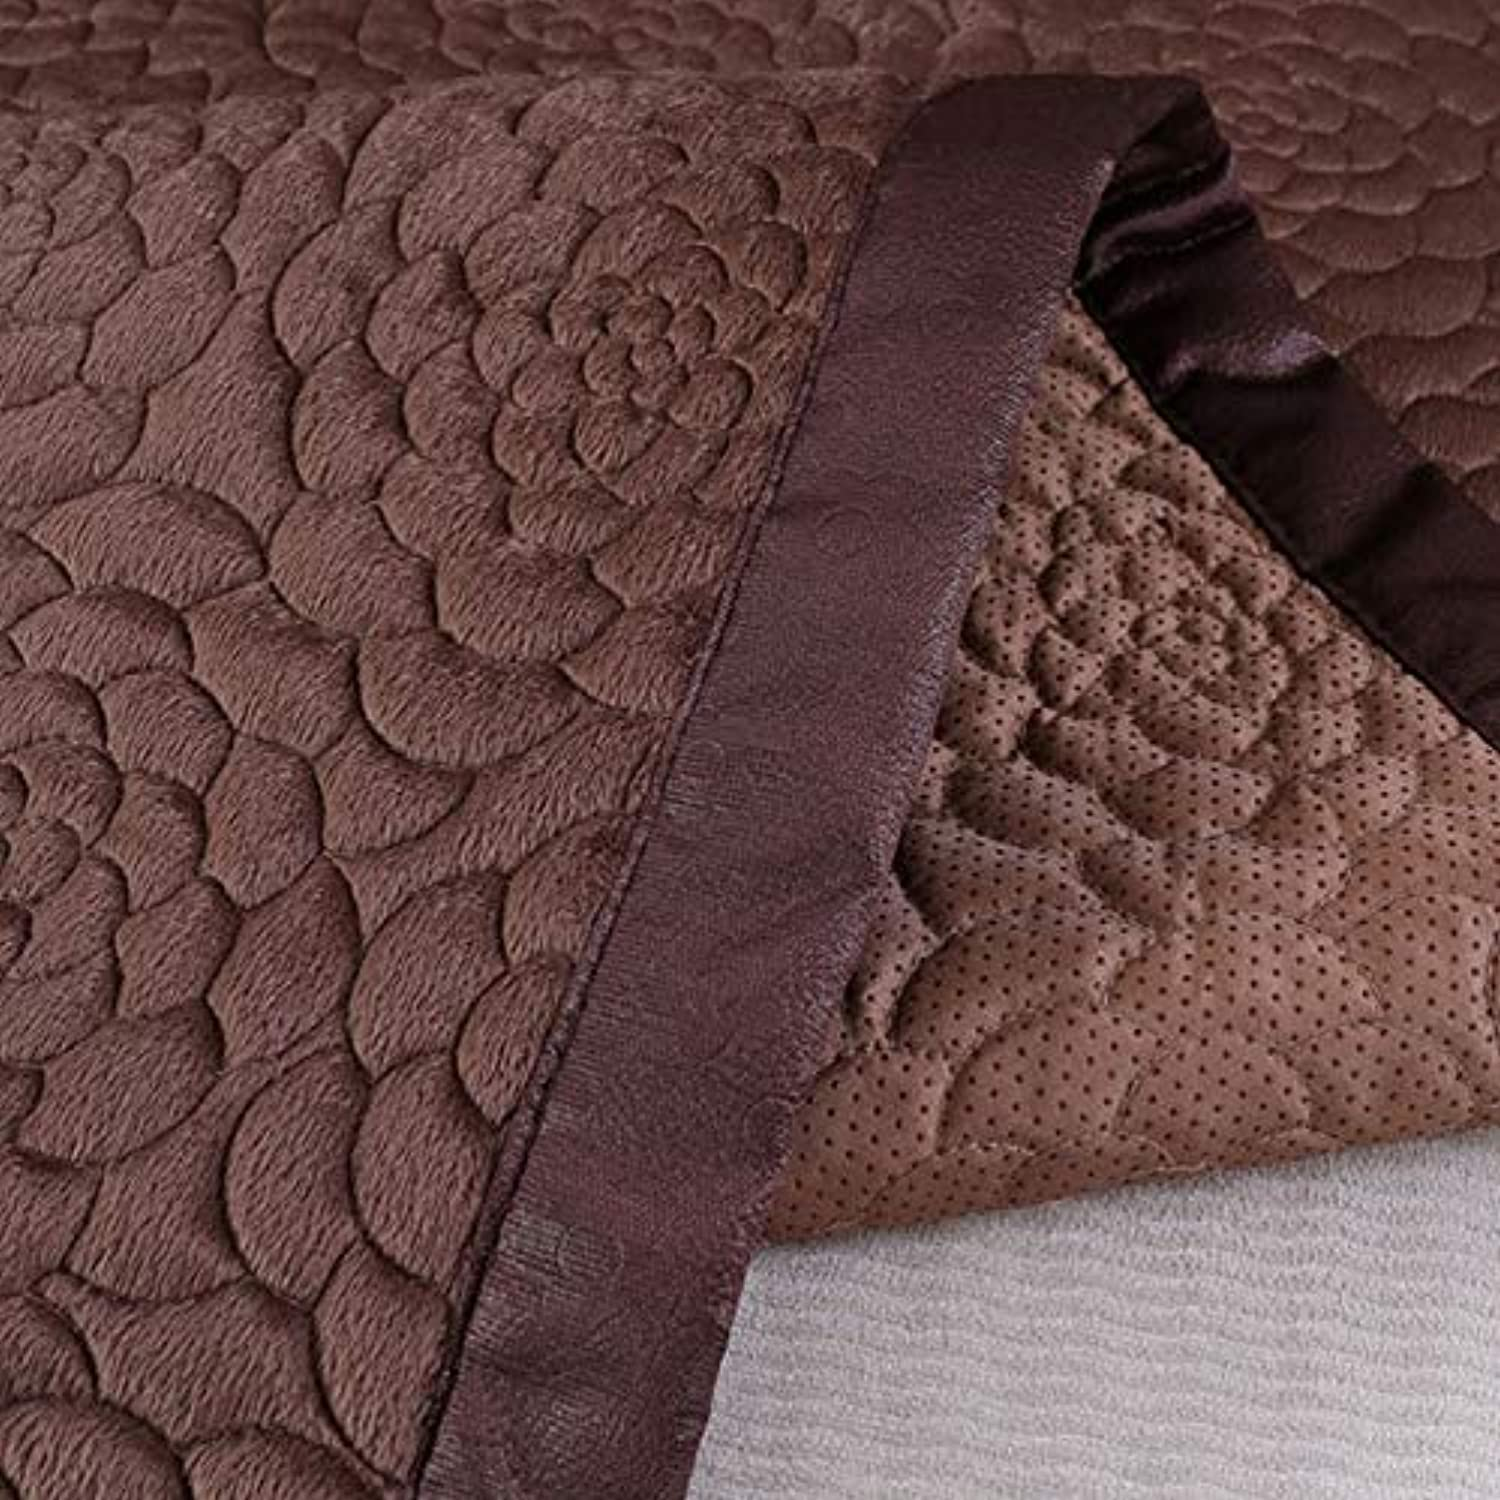 8 colors Sofa Covers Fleece Fabric Knit Eco-Friendly Anti-Mite Manta Sofa Slipcover Couch Cover for Living Room Sofa Towel Mats   1PCS Coffee, 70x150cm 1pc